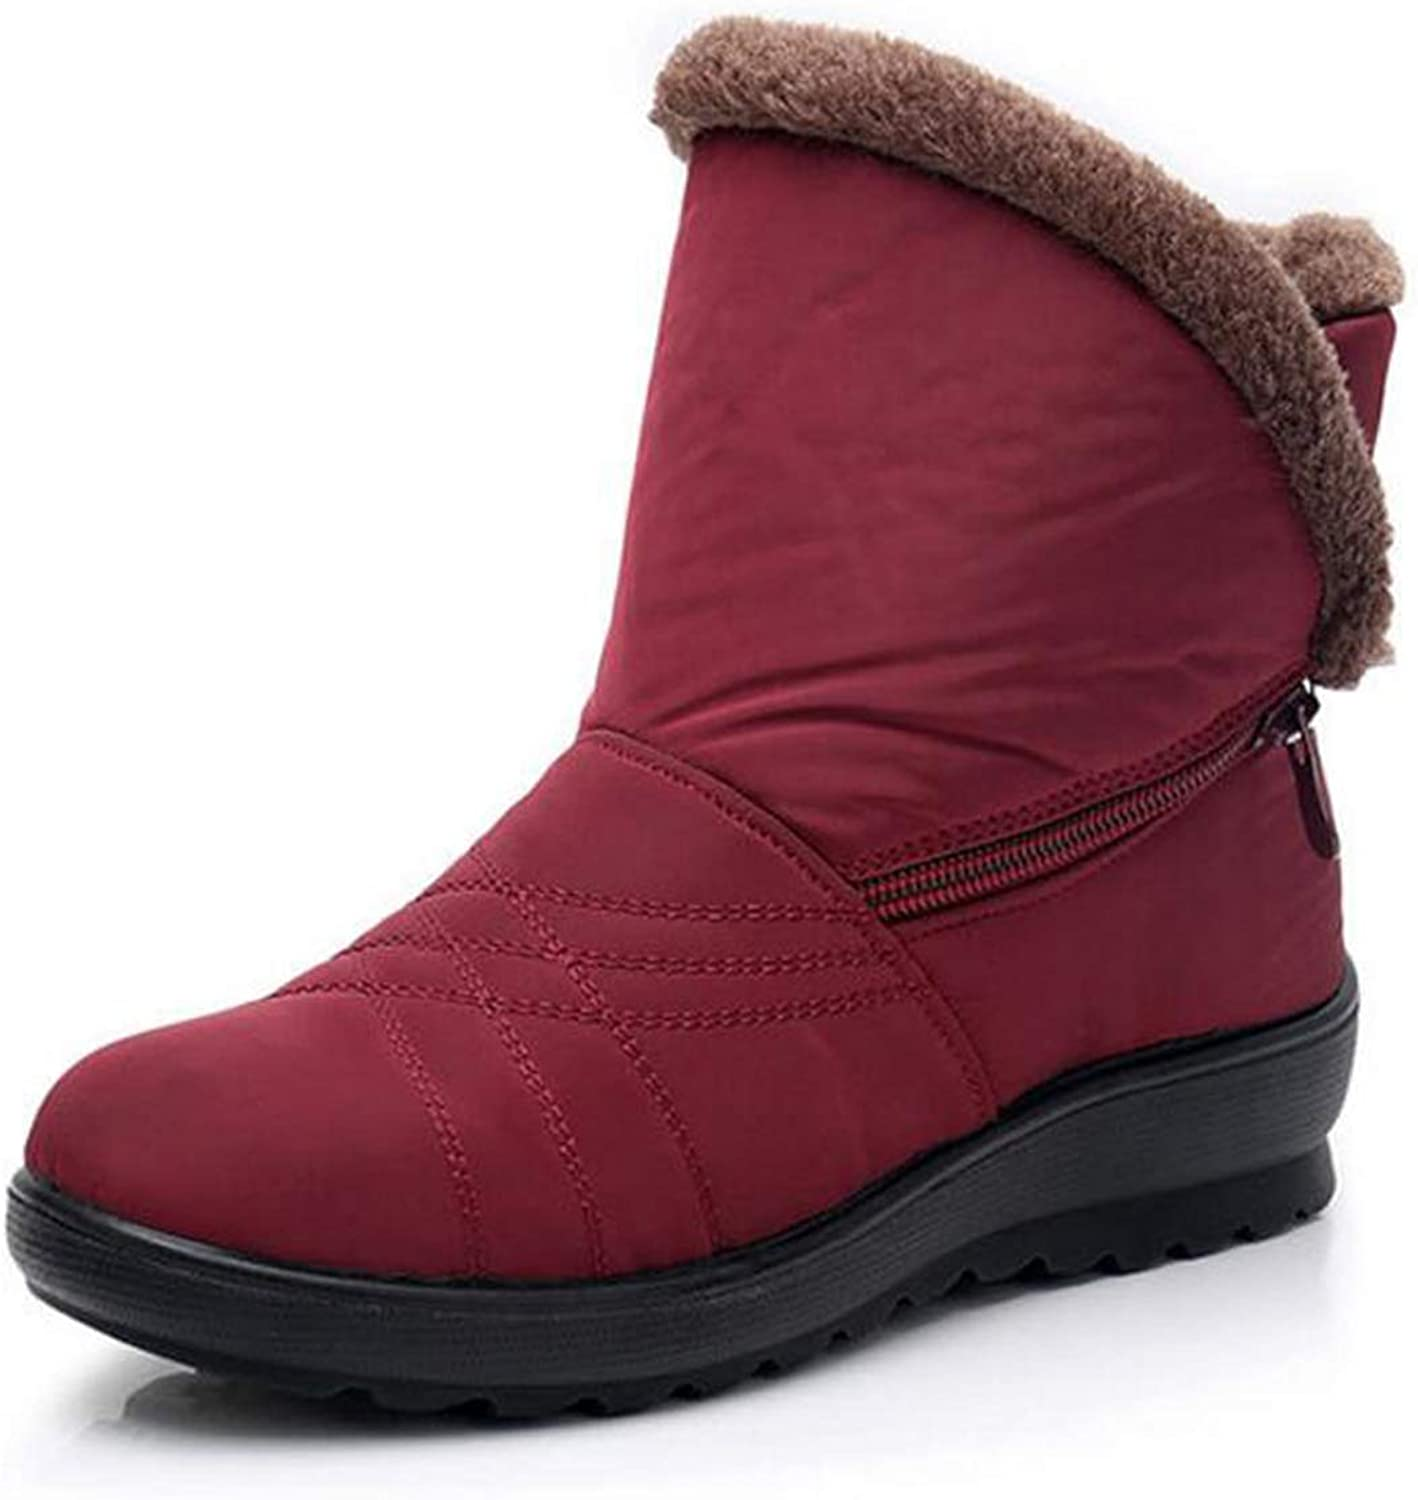 Fmshutp Womens Snow Boots Flock Winter Side Zipper Ankle Booties shoes